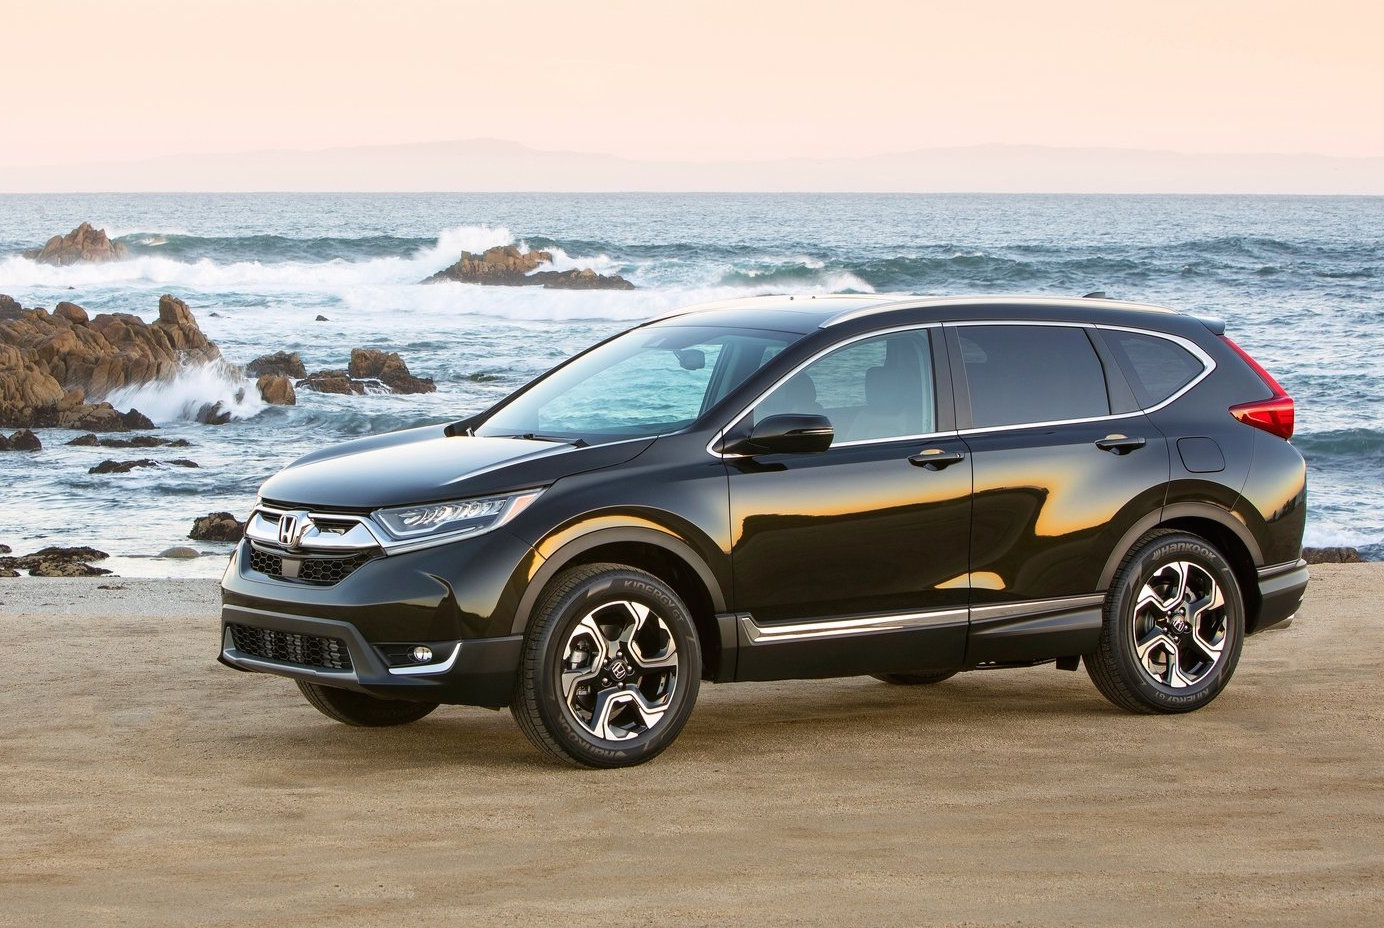 7 Seater Suv 2017 >> Top 10 Best 7 Seat Suvs Coming To Australia In 2017 2018